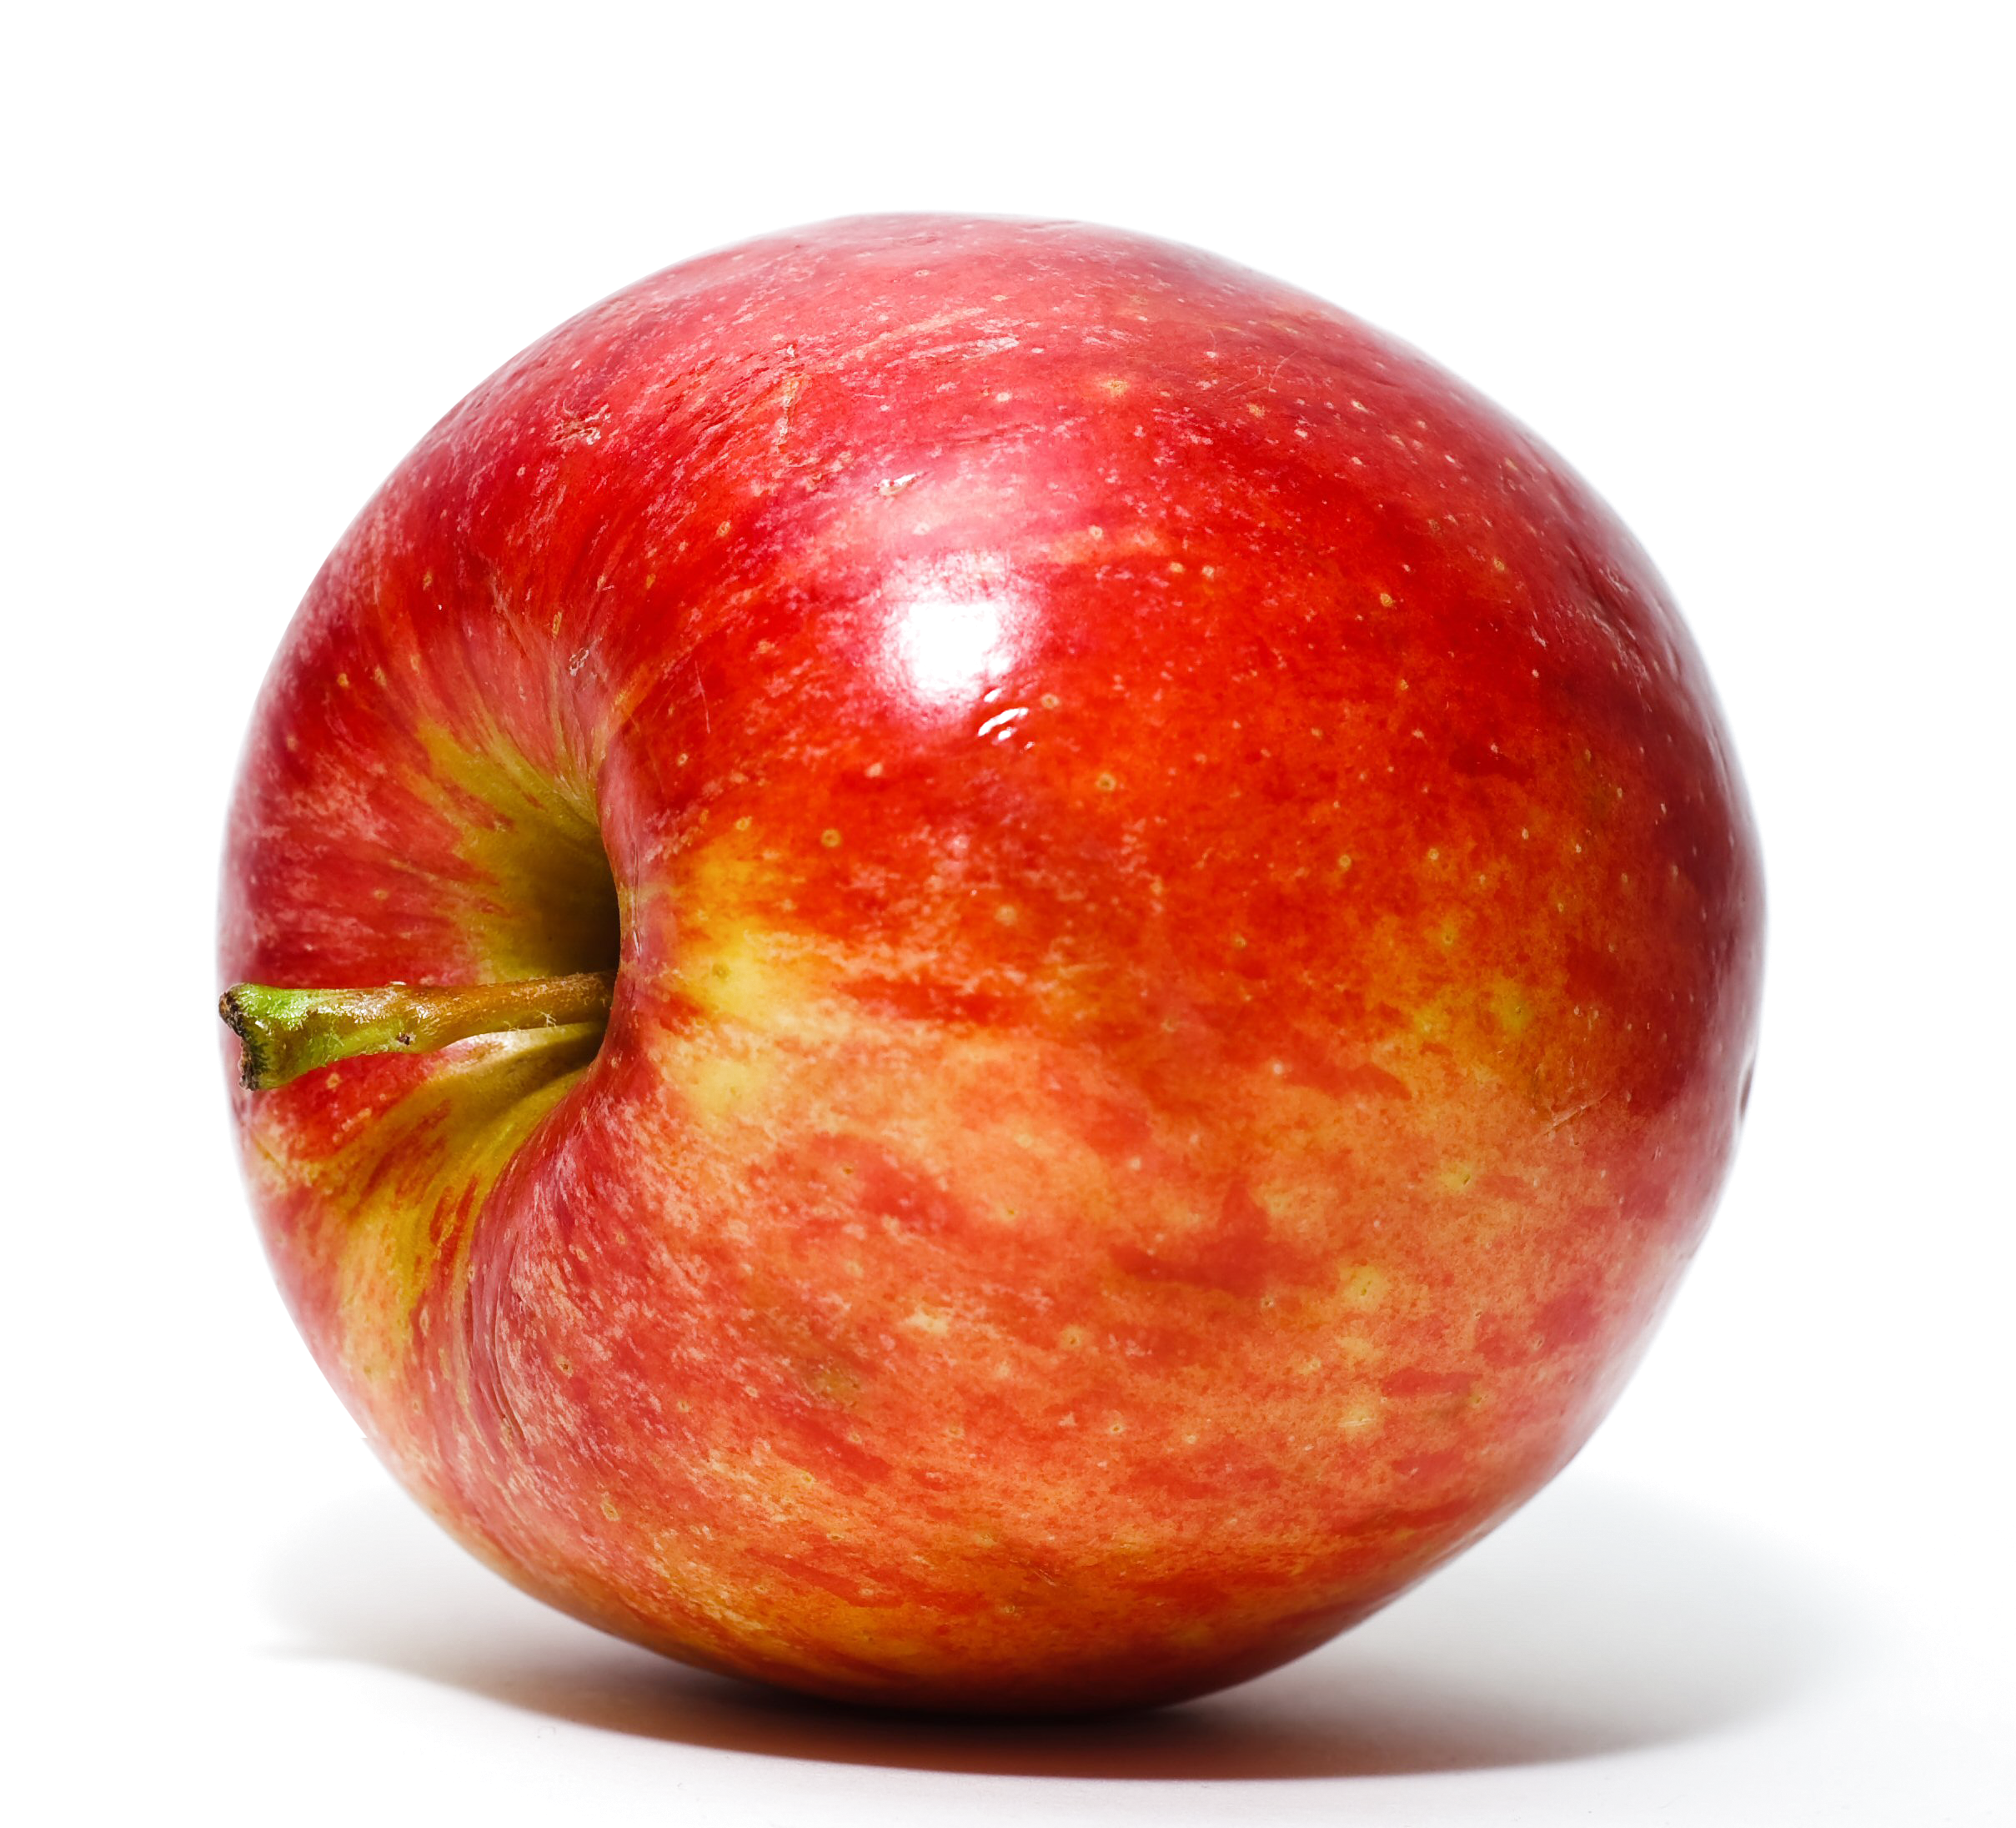 Apple Fruit Quality PNG 210x190 - Apple Fruit PNG Transparent Free Images - One Apple PNG